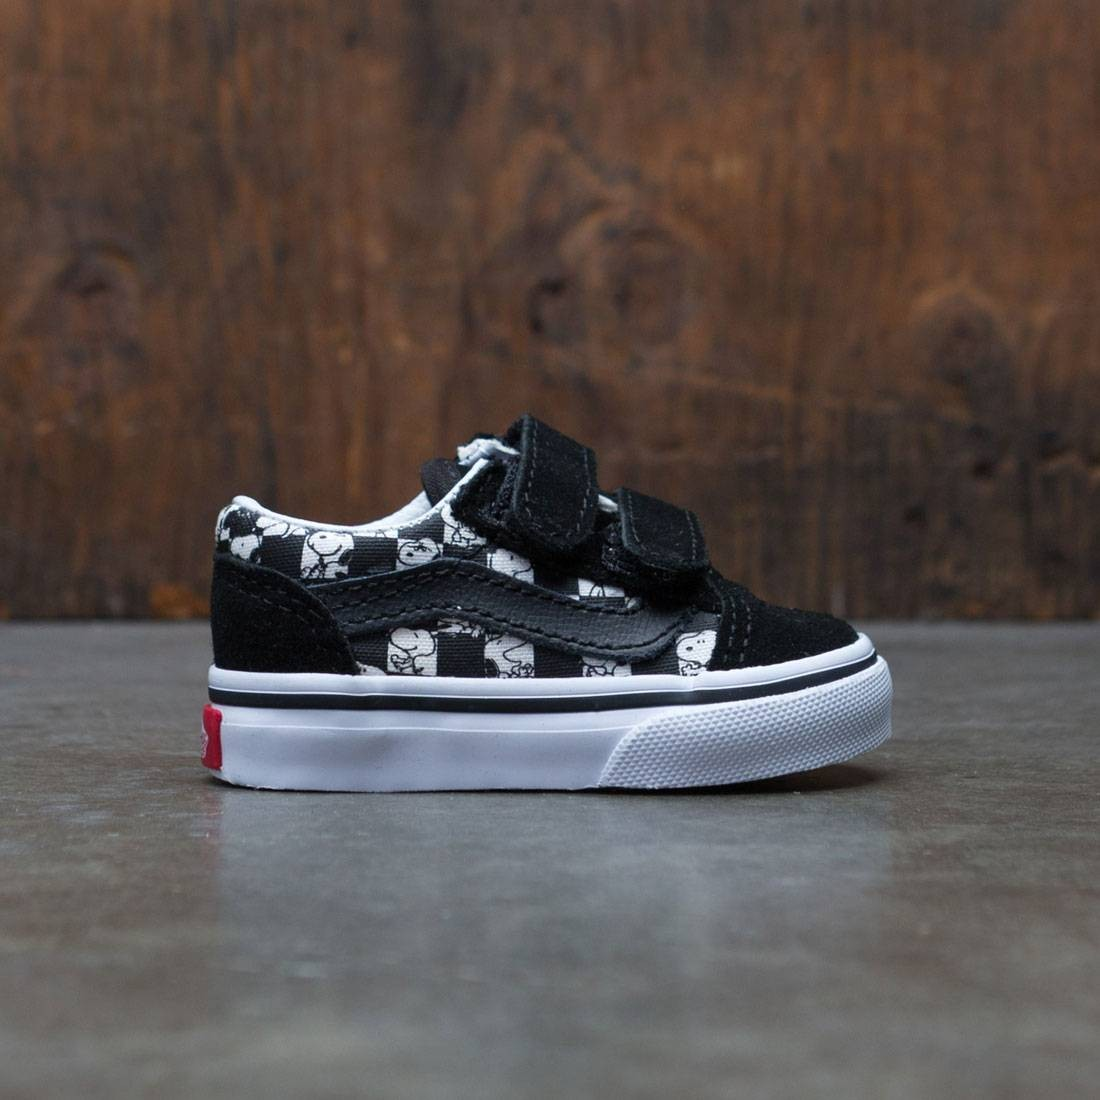 vans x peanuts old skool